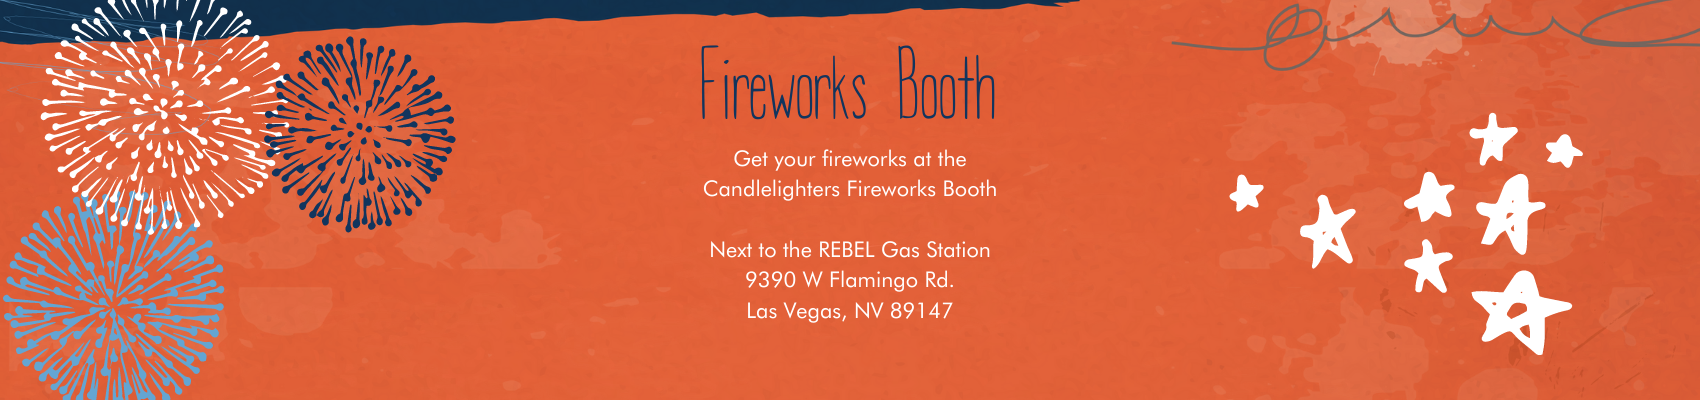 Fireworks Booth